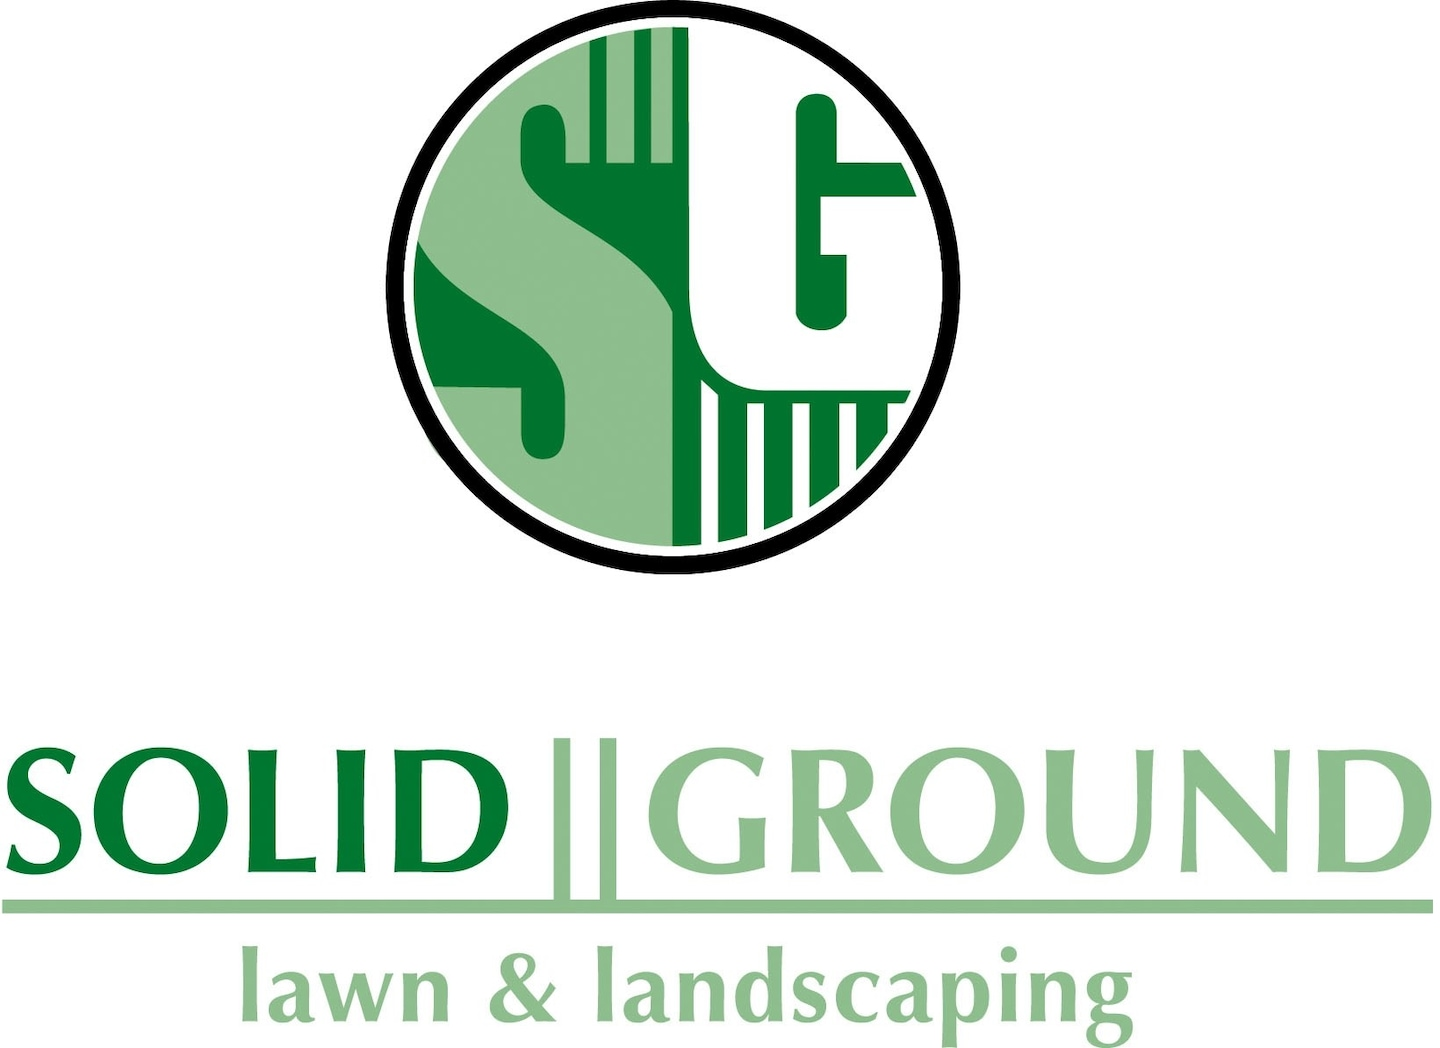 Solid Ground Lawn Amp Landscaping Reviews North Little